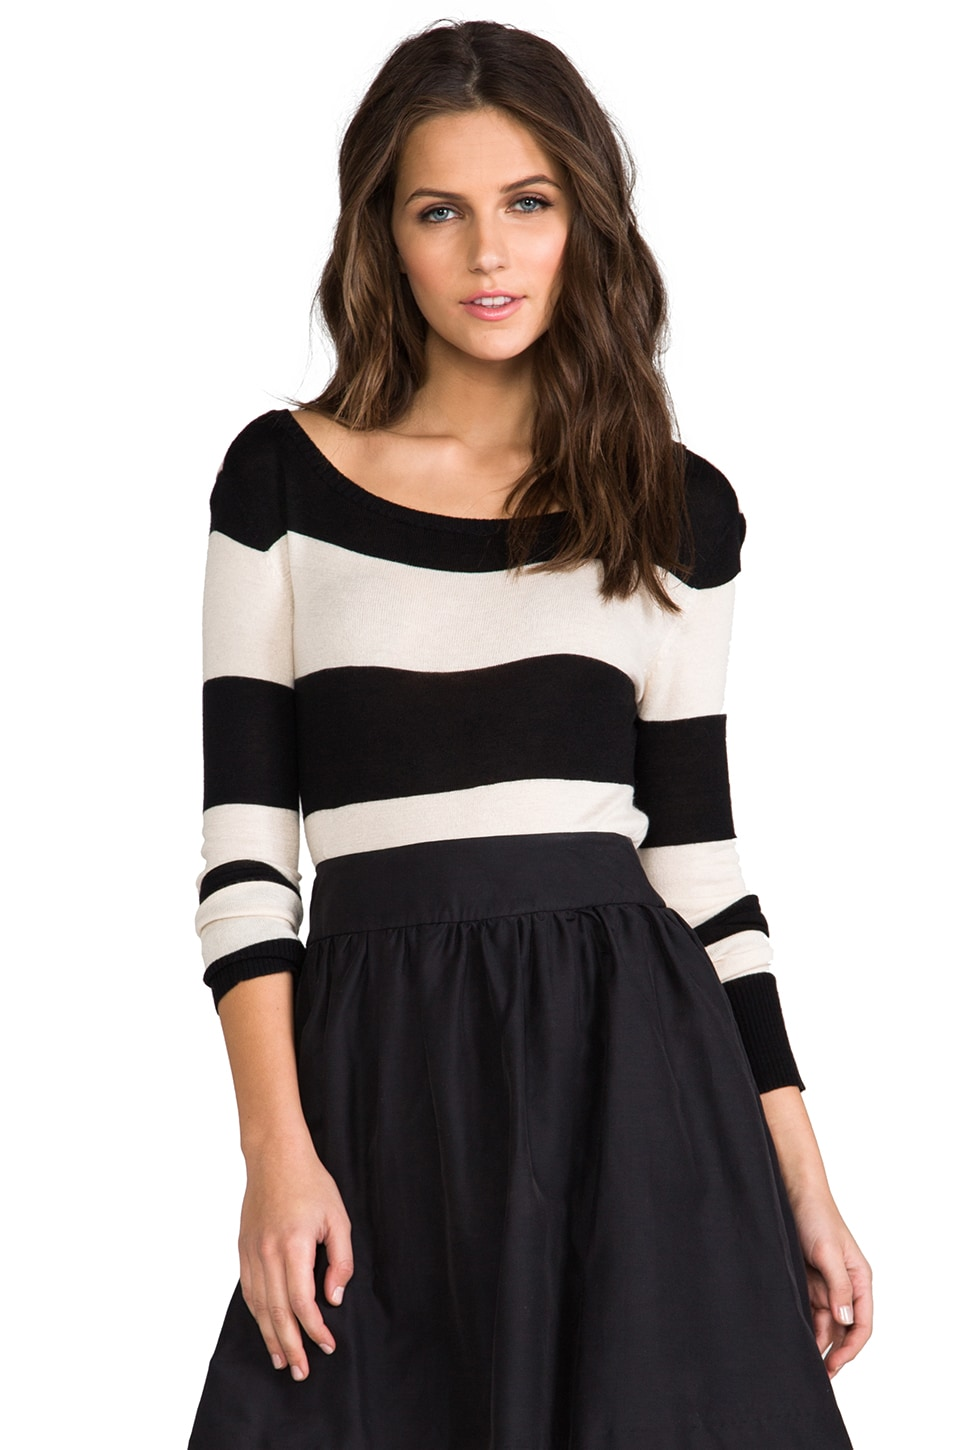 Paper Crown by Lauren Conrad Desert Sweater in Winter White/Black Stripe